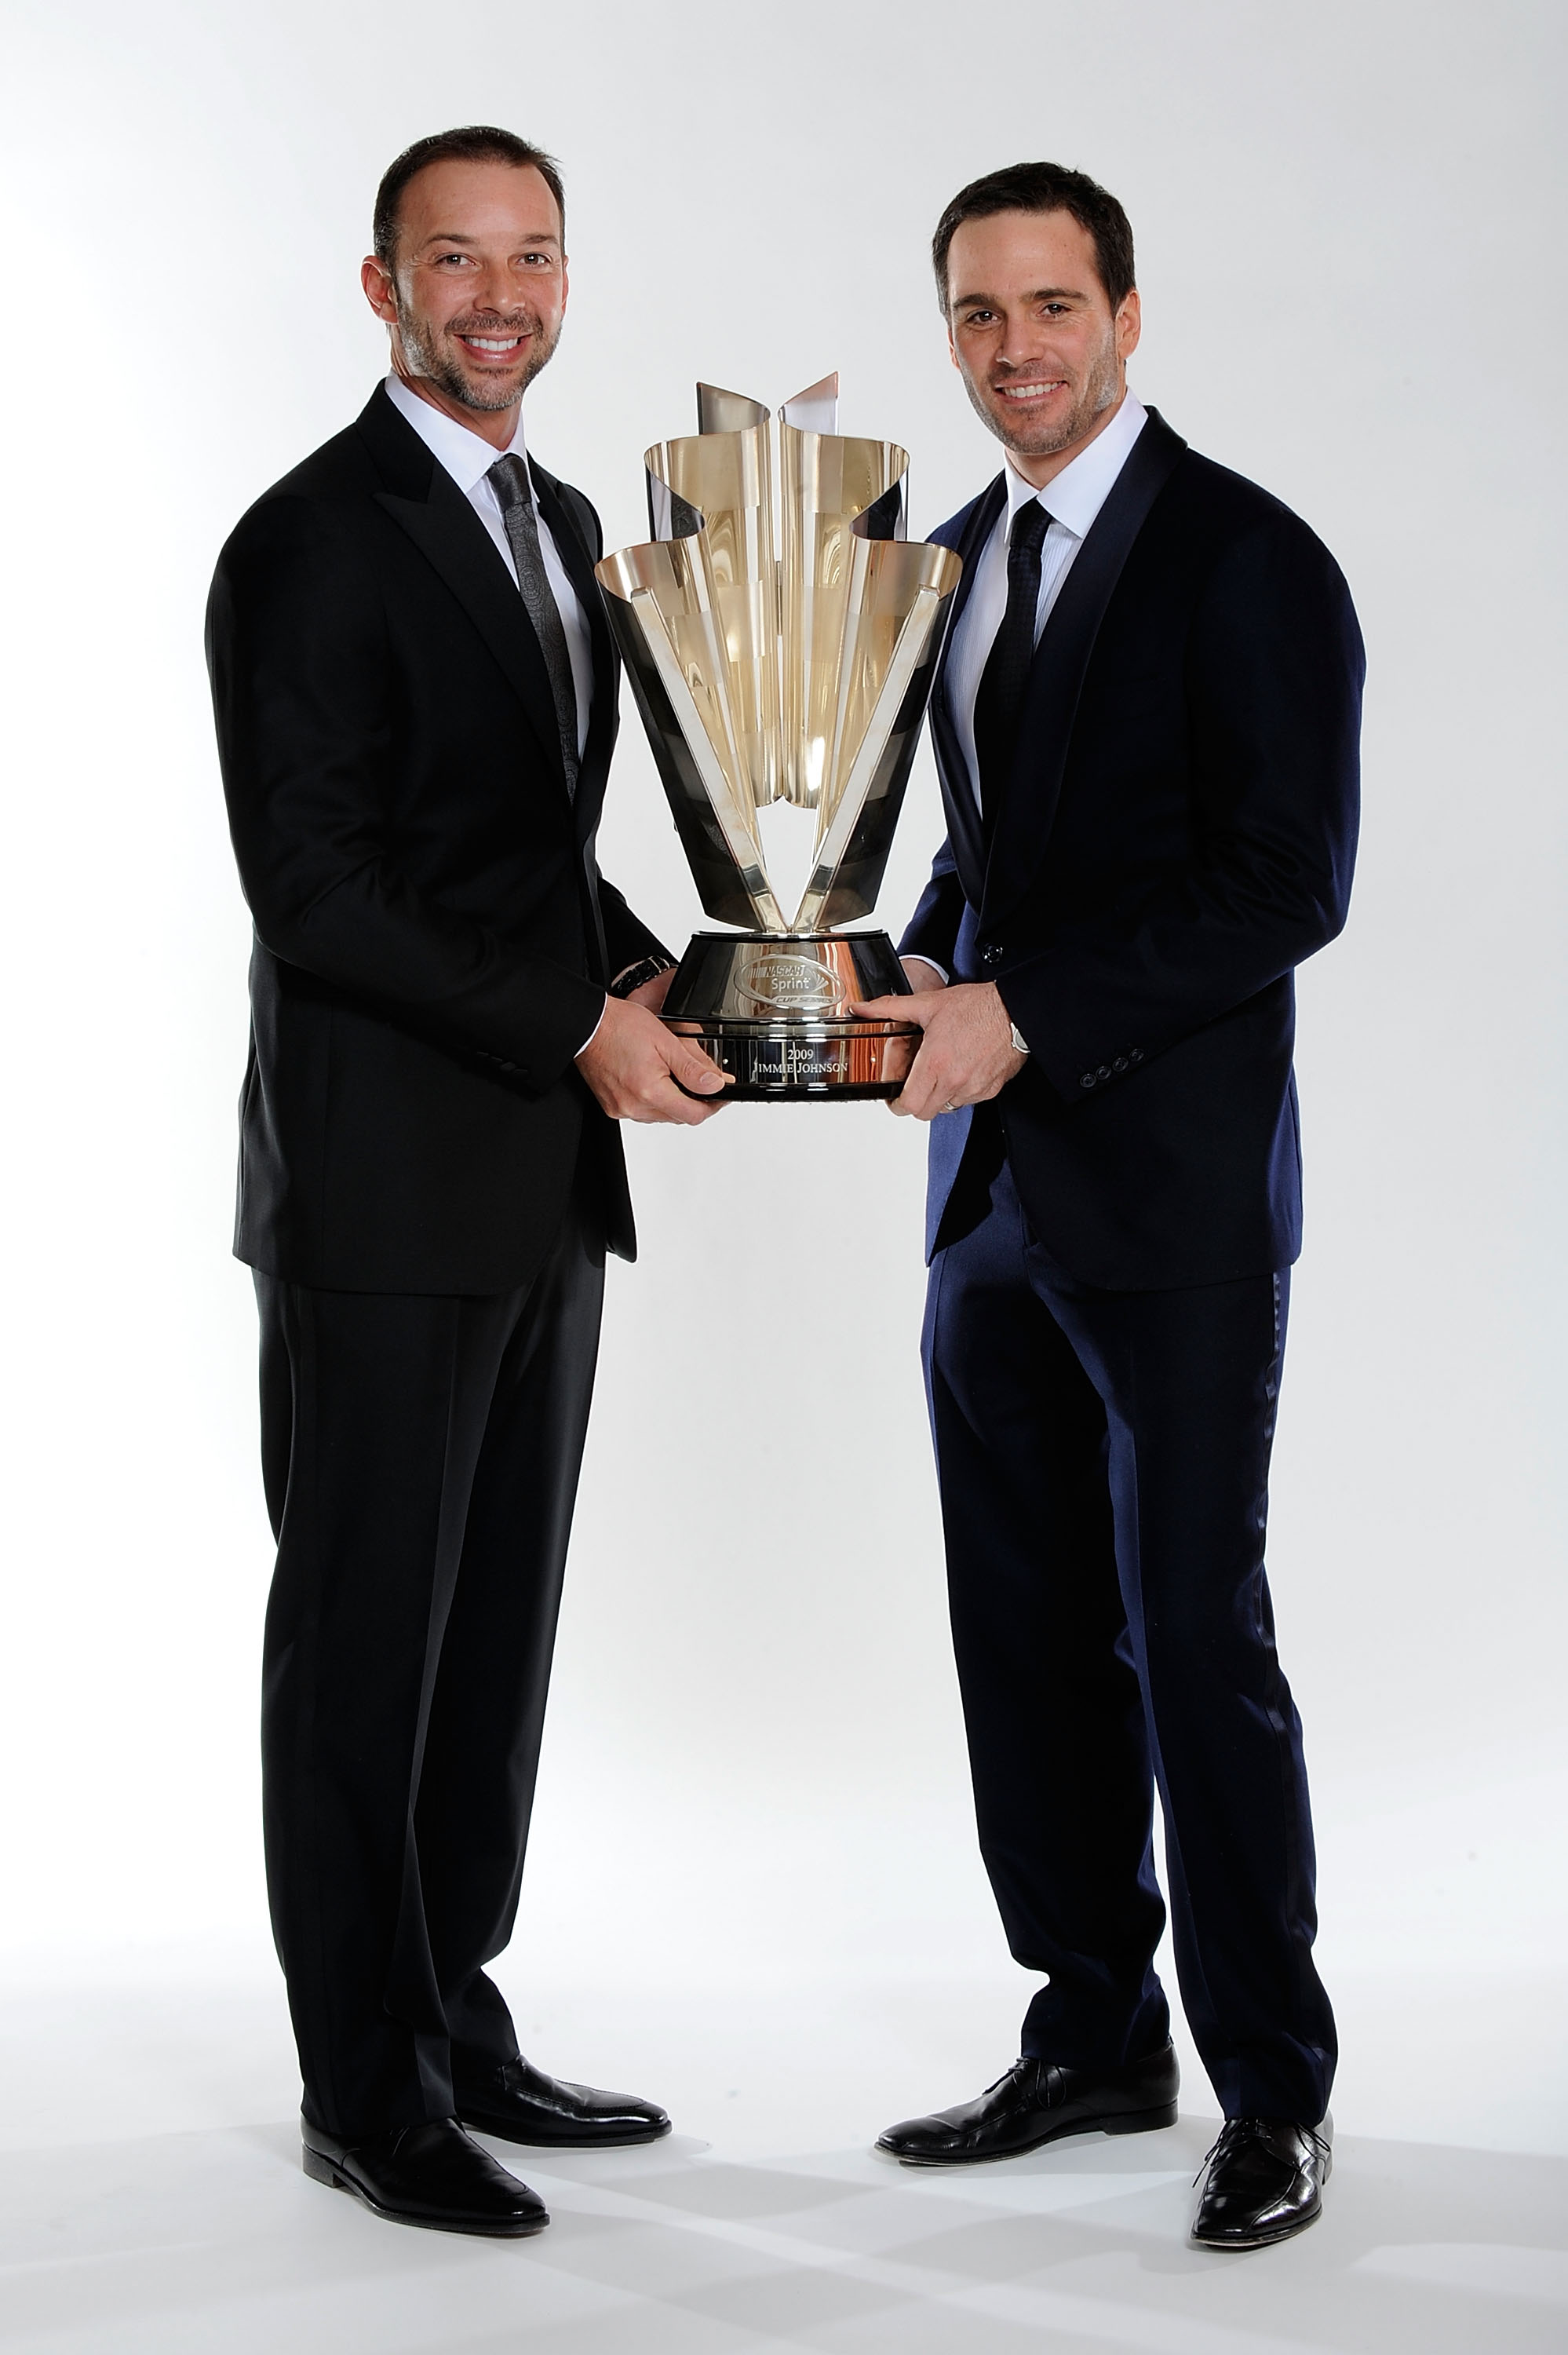 LAS VEGAS - DECEMBER 04:  Four time NASCAR Sprint Cup Series Champion Jimmie Johnson (R) and crew chief Chad Knaus pose before the NASCAR Sprint Cup Series awards banquet during the final day of the NASCAR Sprint Cup Series Champions Week on December 4, 2